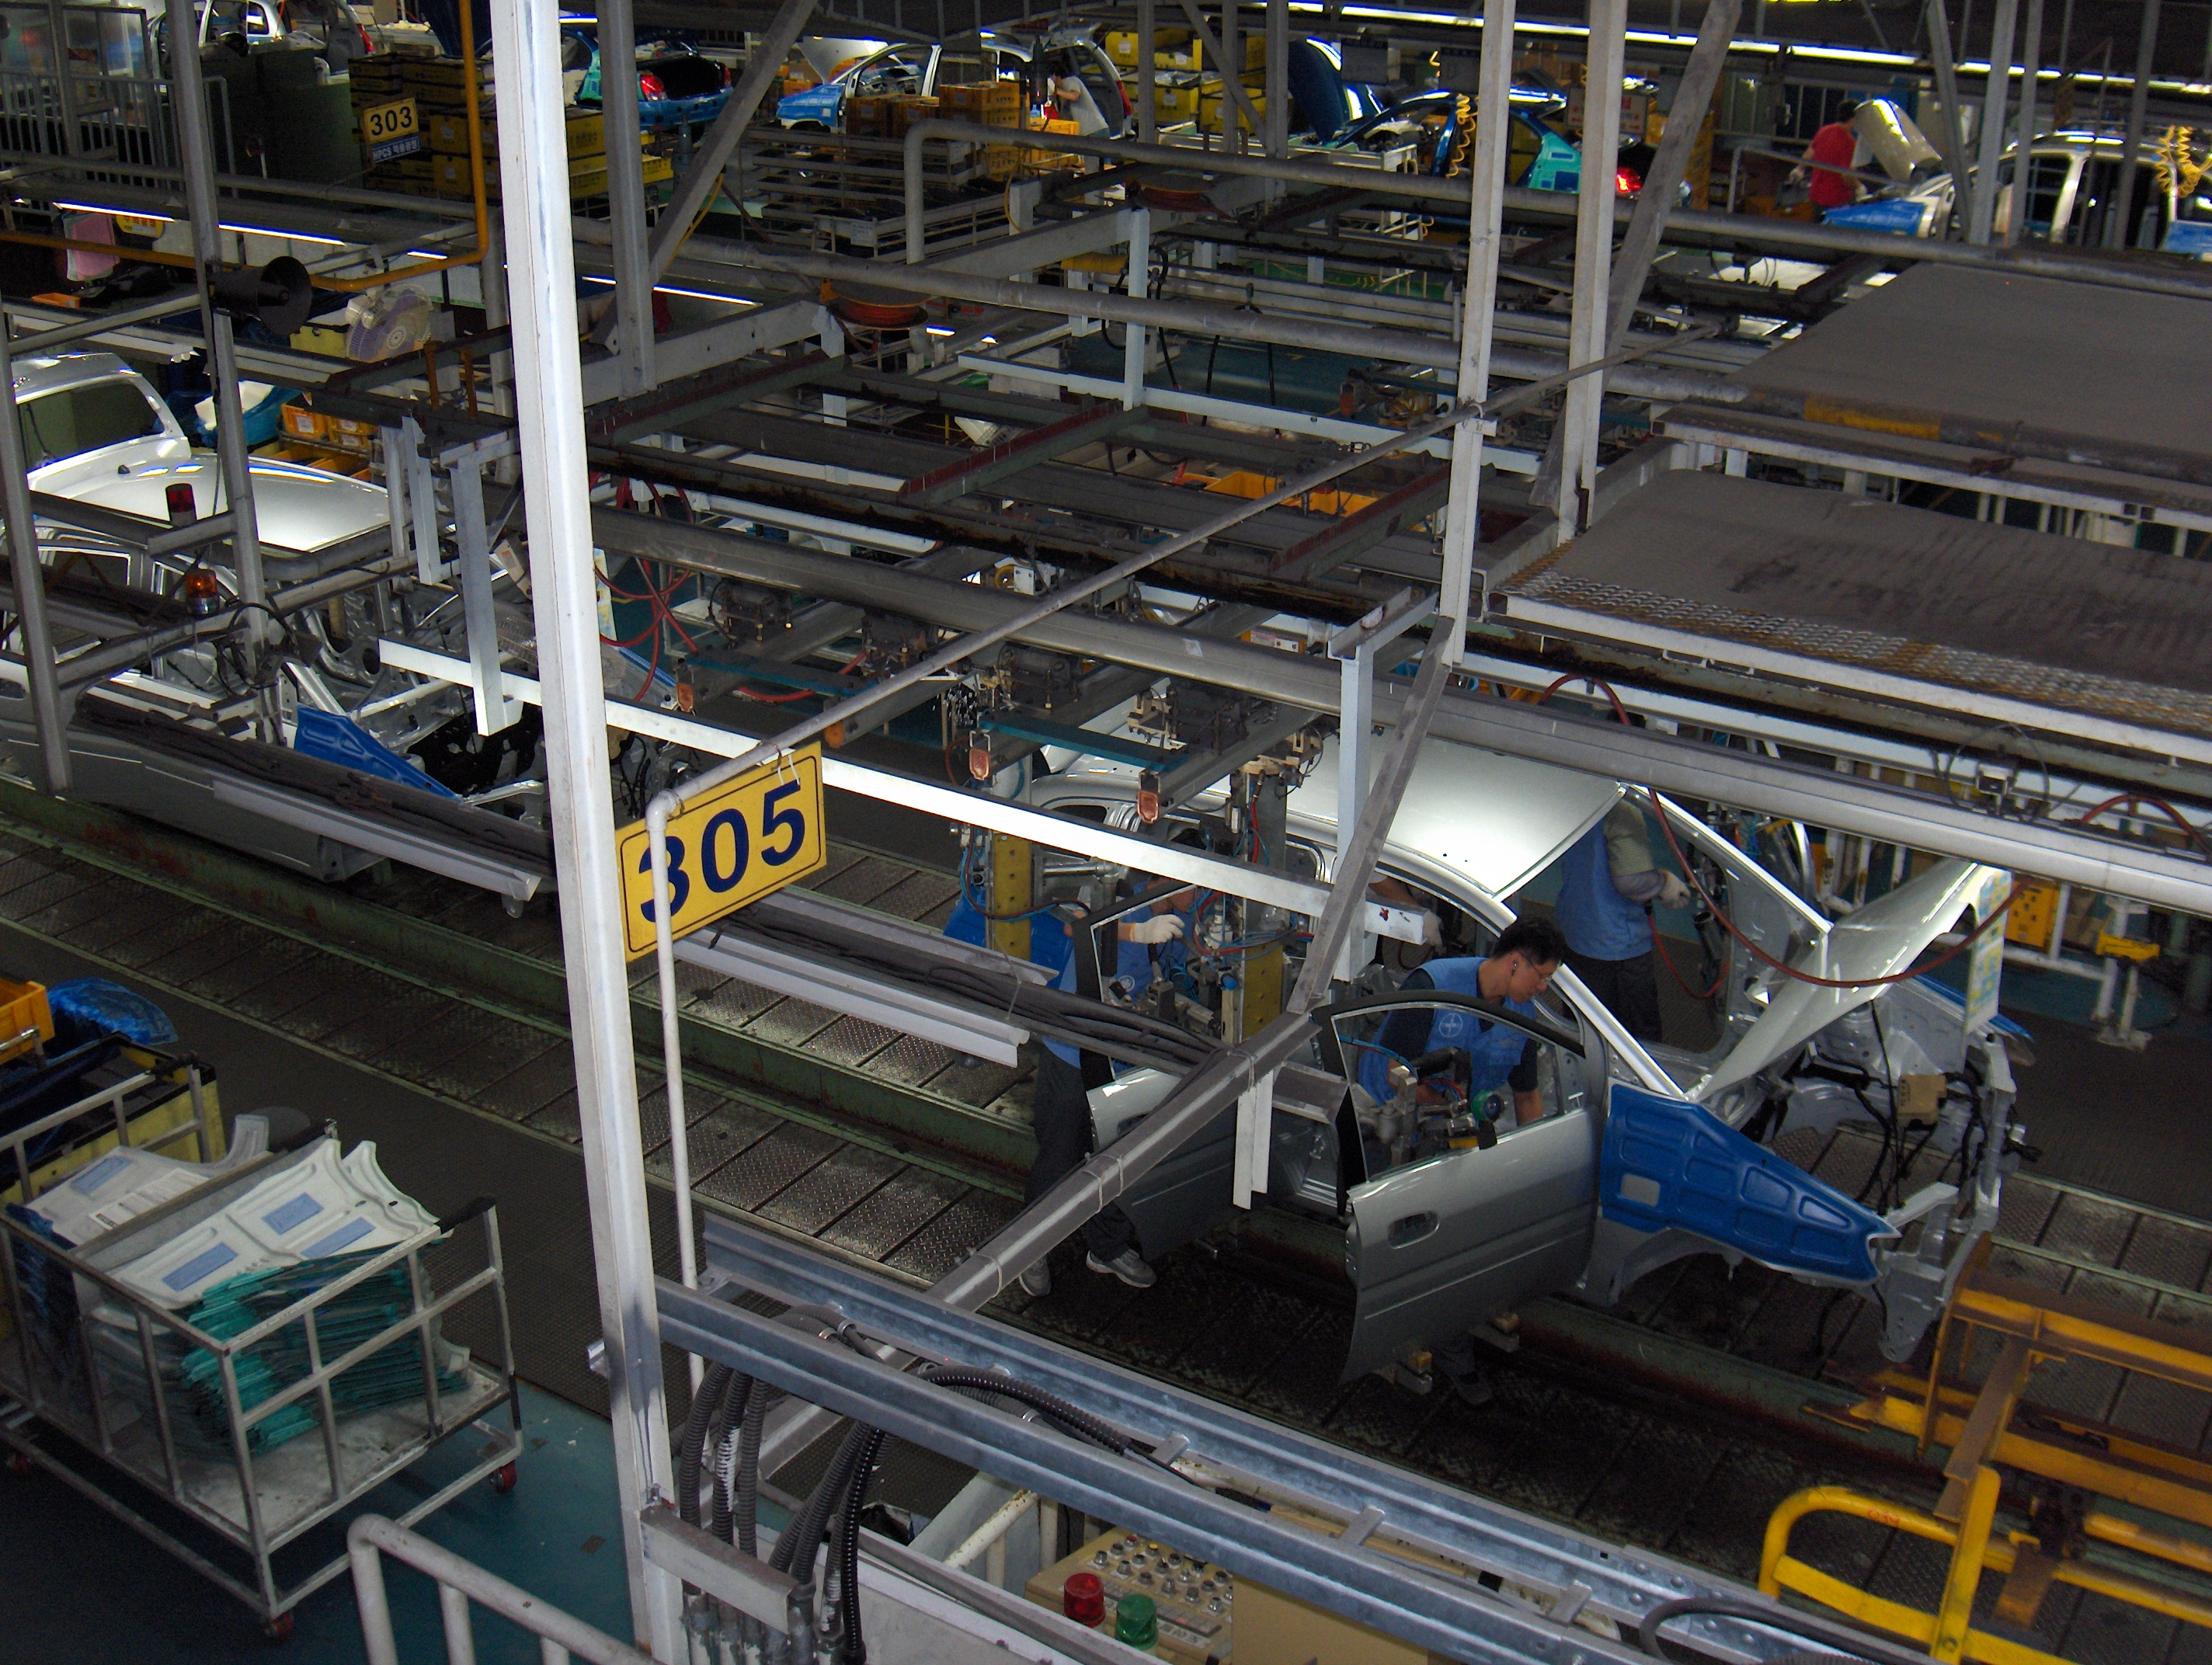 Assembly line at Hyundai Motor Company's car factory in Ulsan, South Korea. (Photo courtesy of Taneli Rajala/Wikimedia Commons)